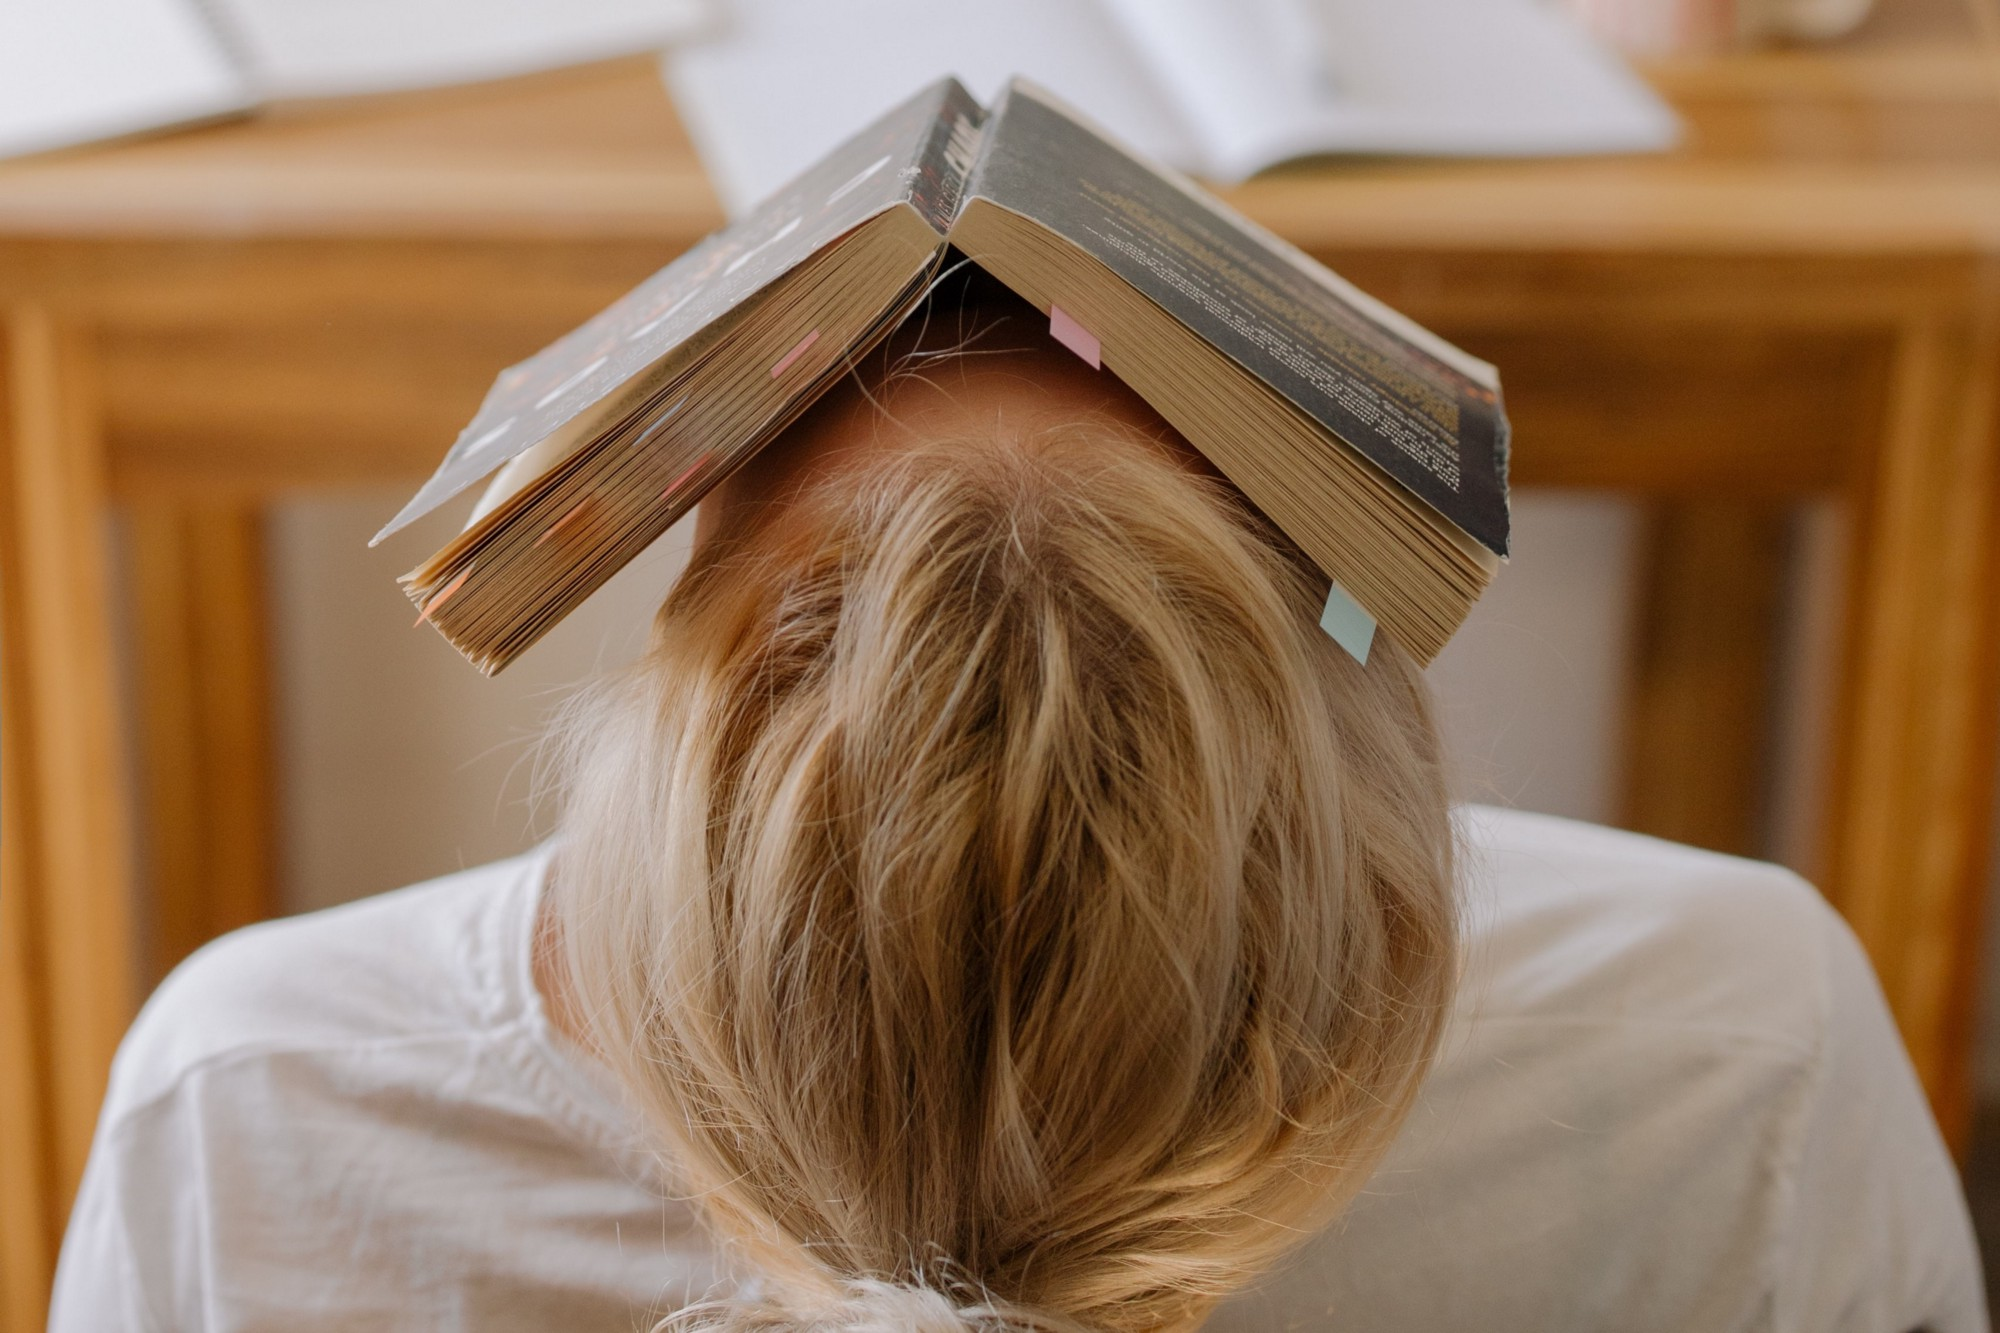 girl with her head tipped back and a book covering her face